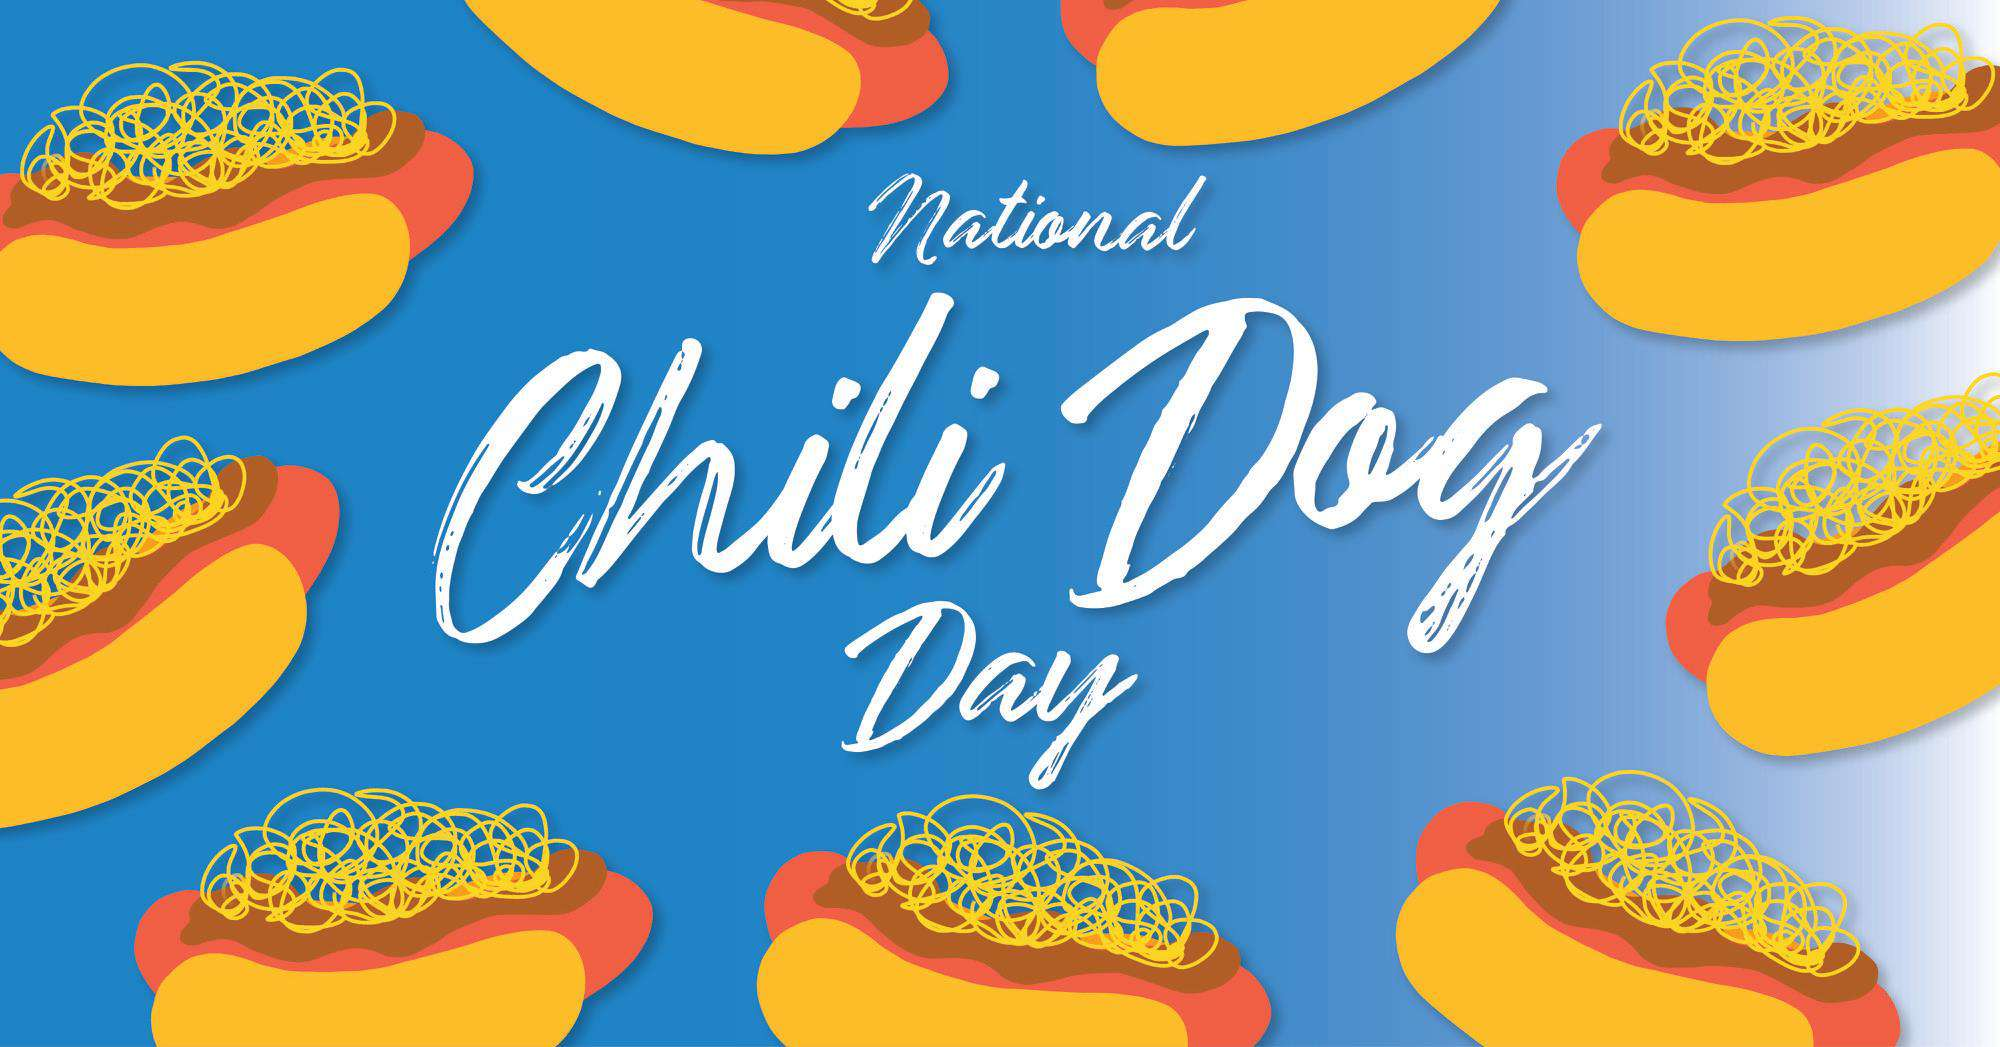 National Chili Day Wishes pics free download